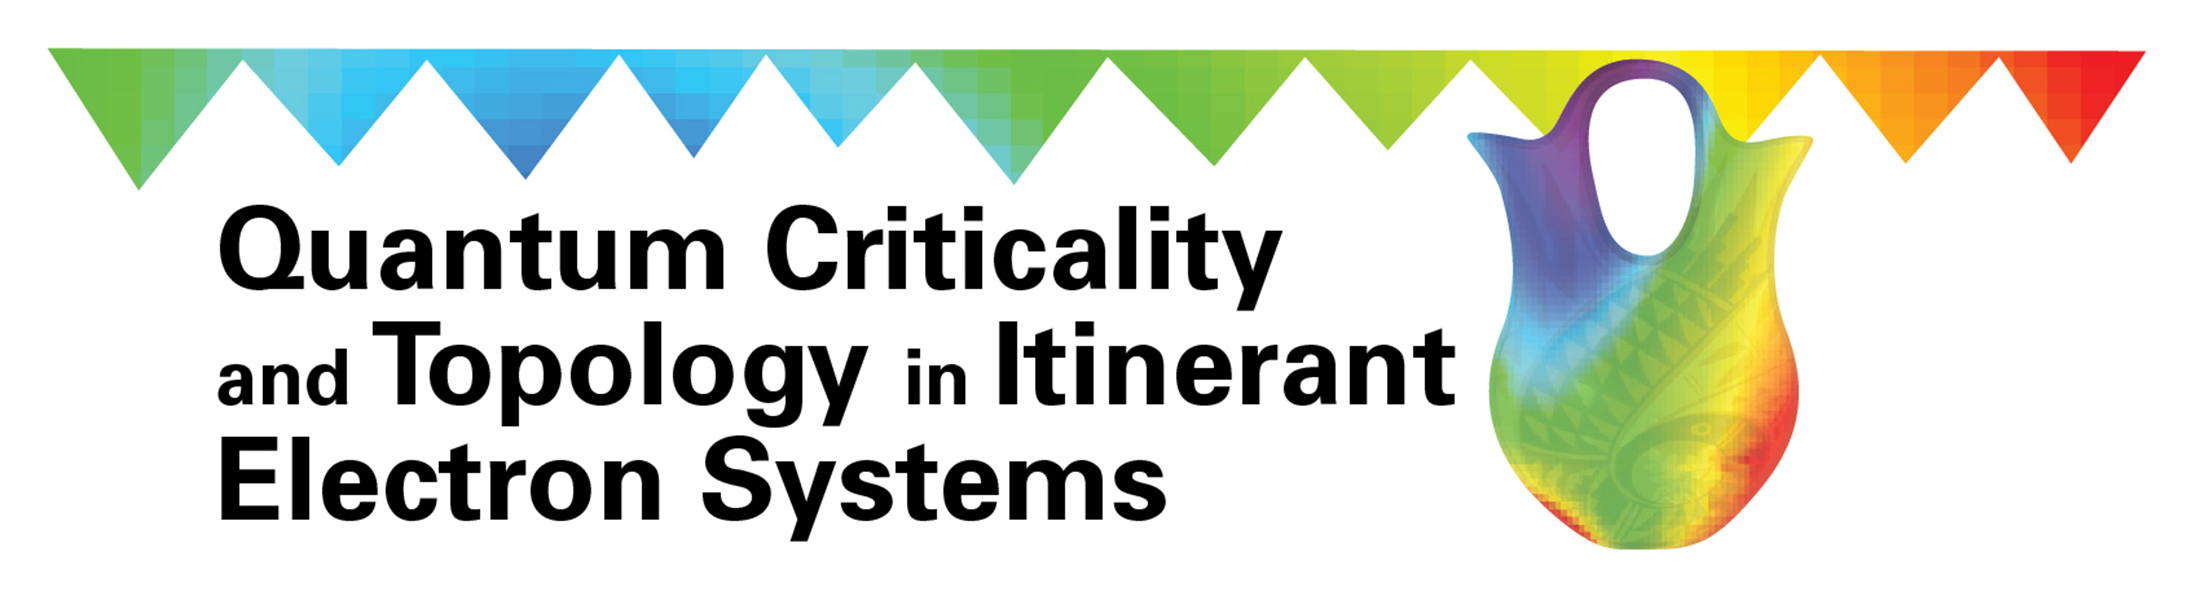 Quantum Criticality and Topology in Itinerant Electron Systems